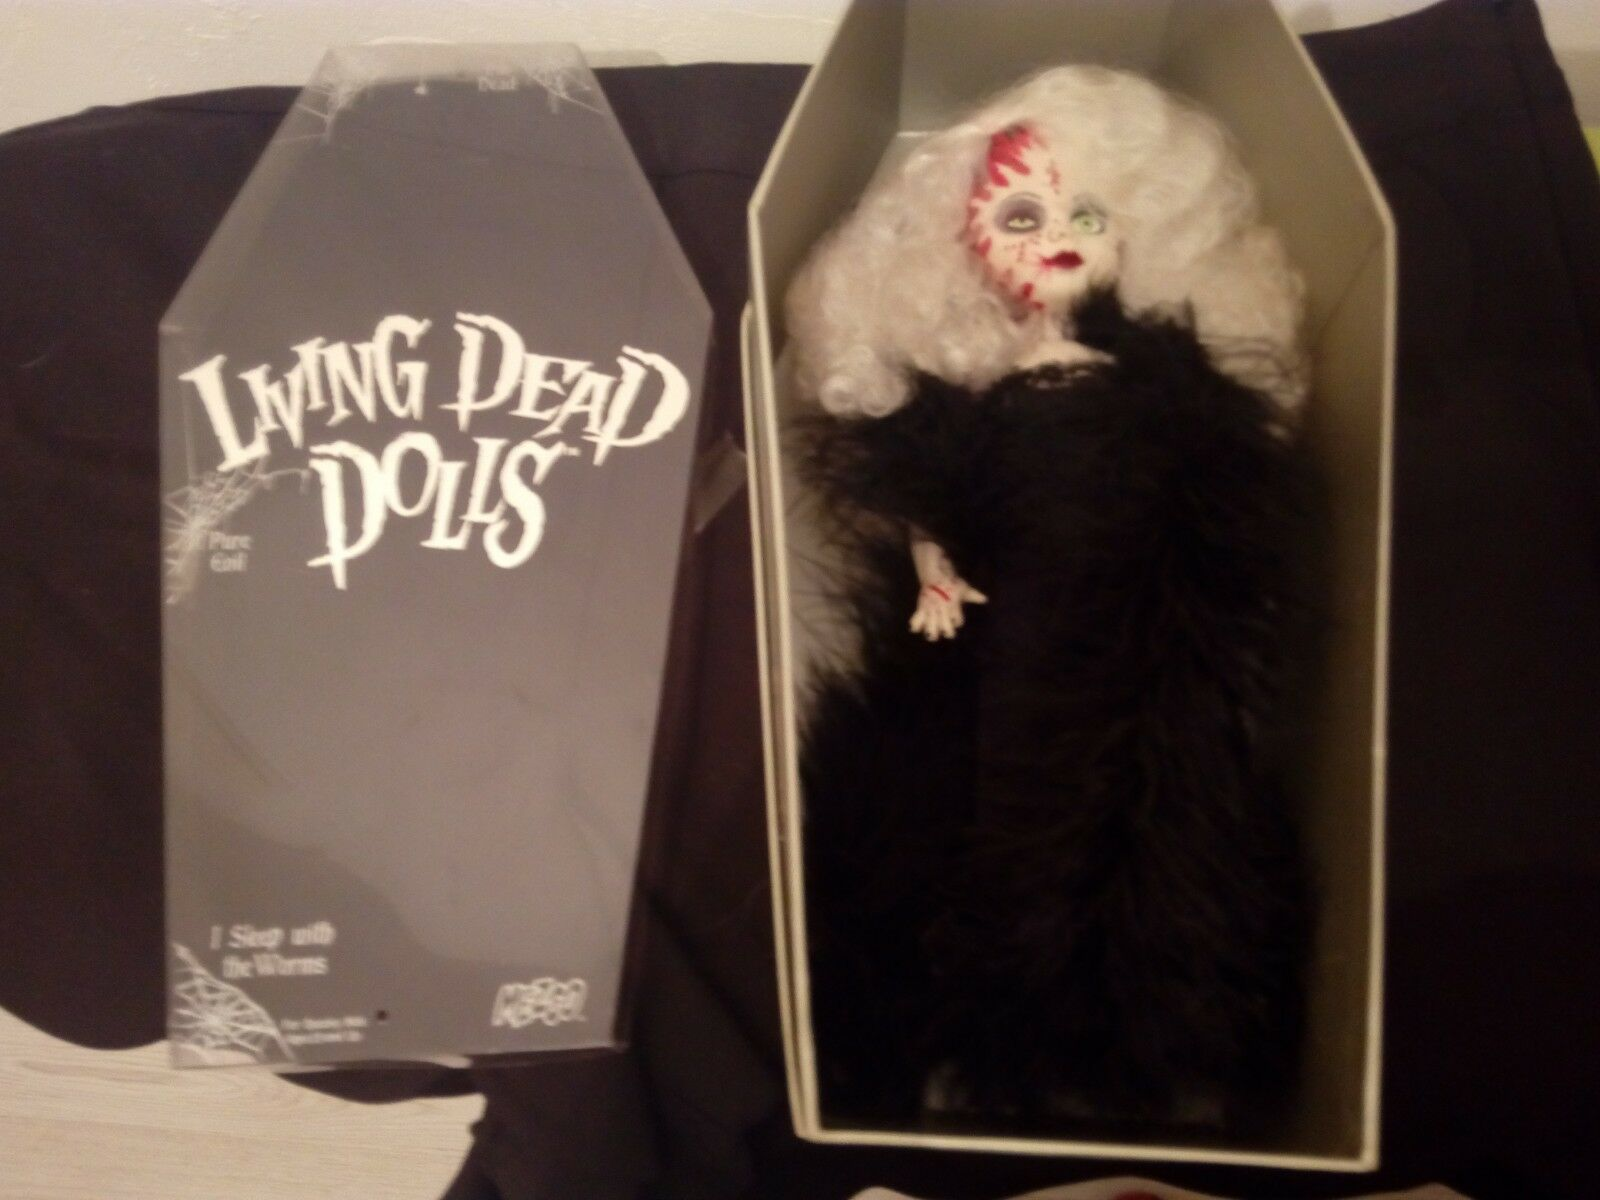 LIVING DEAD bambolaS SERIE 5 HOLLYWOOD